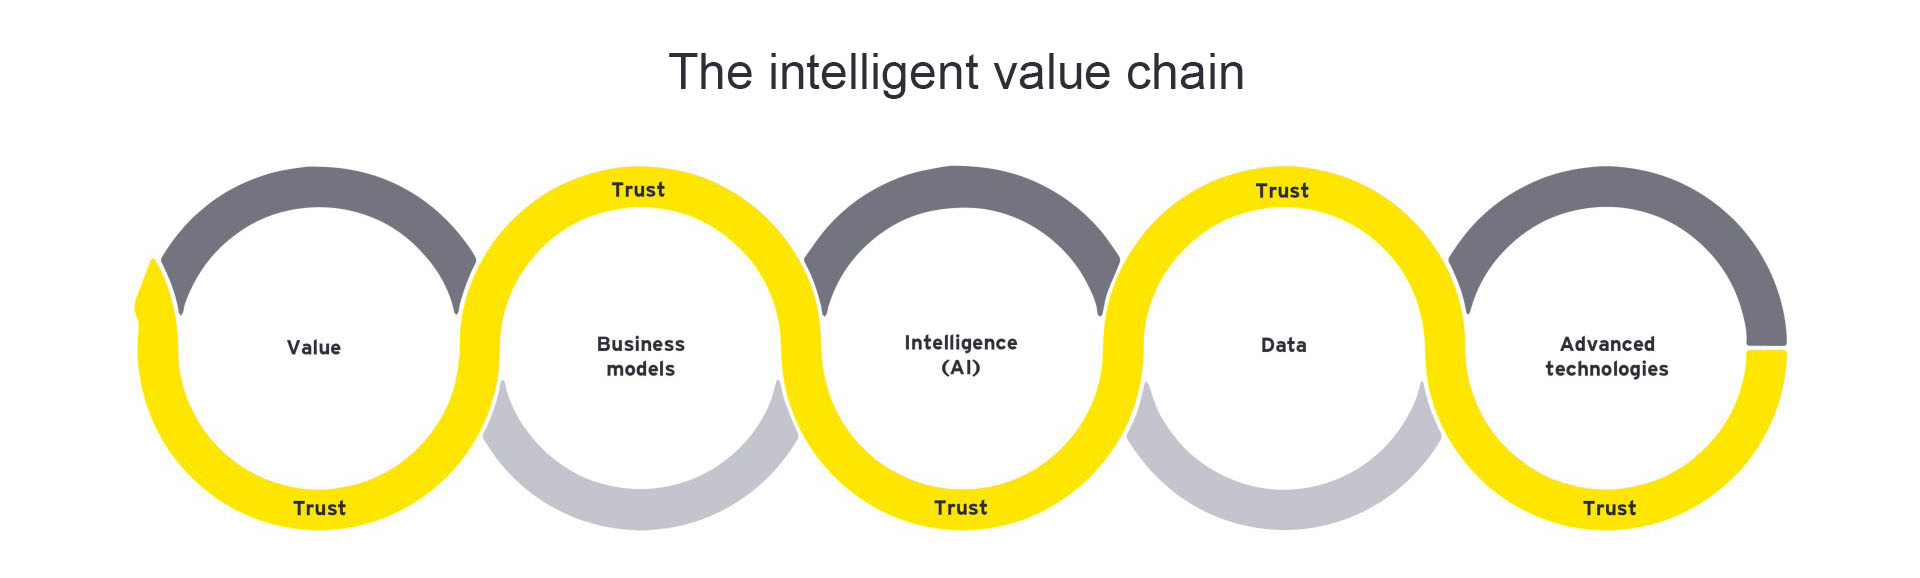 The intelligent value chain graphic